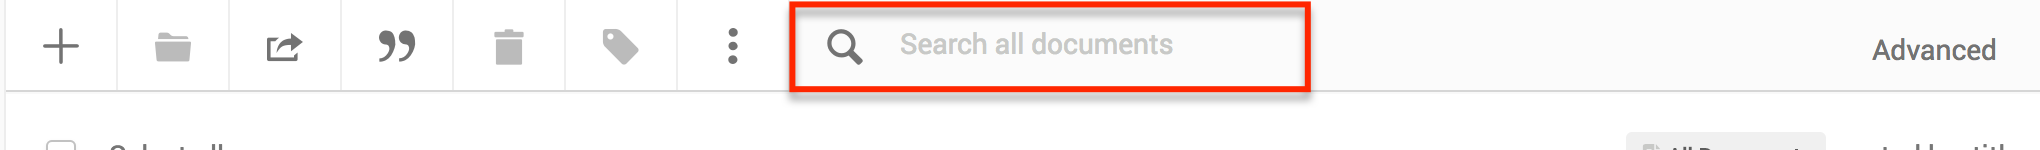 search your folders and documents by going to the magnifying glass